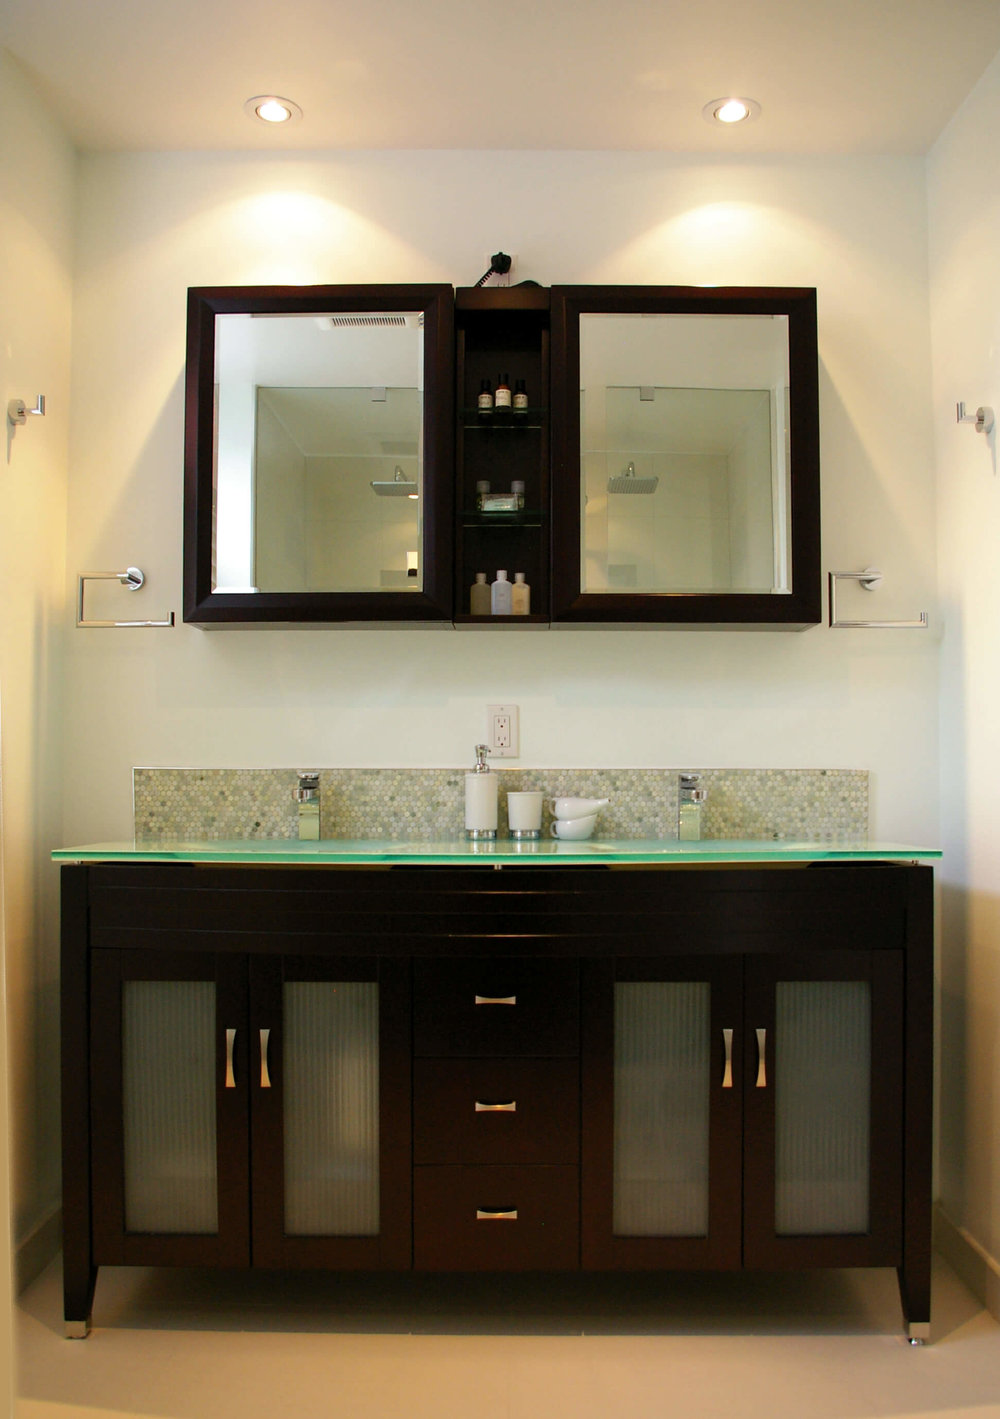 bathroom-renovation-ideas-vanity-2.jpg